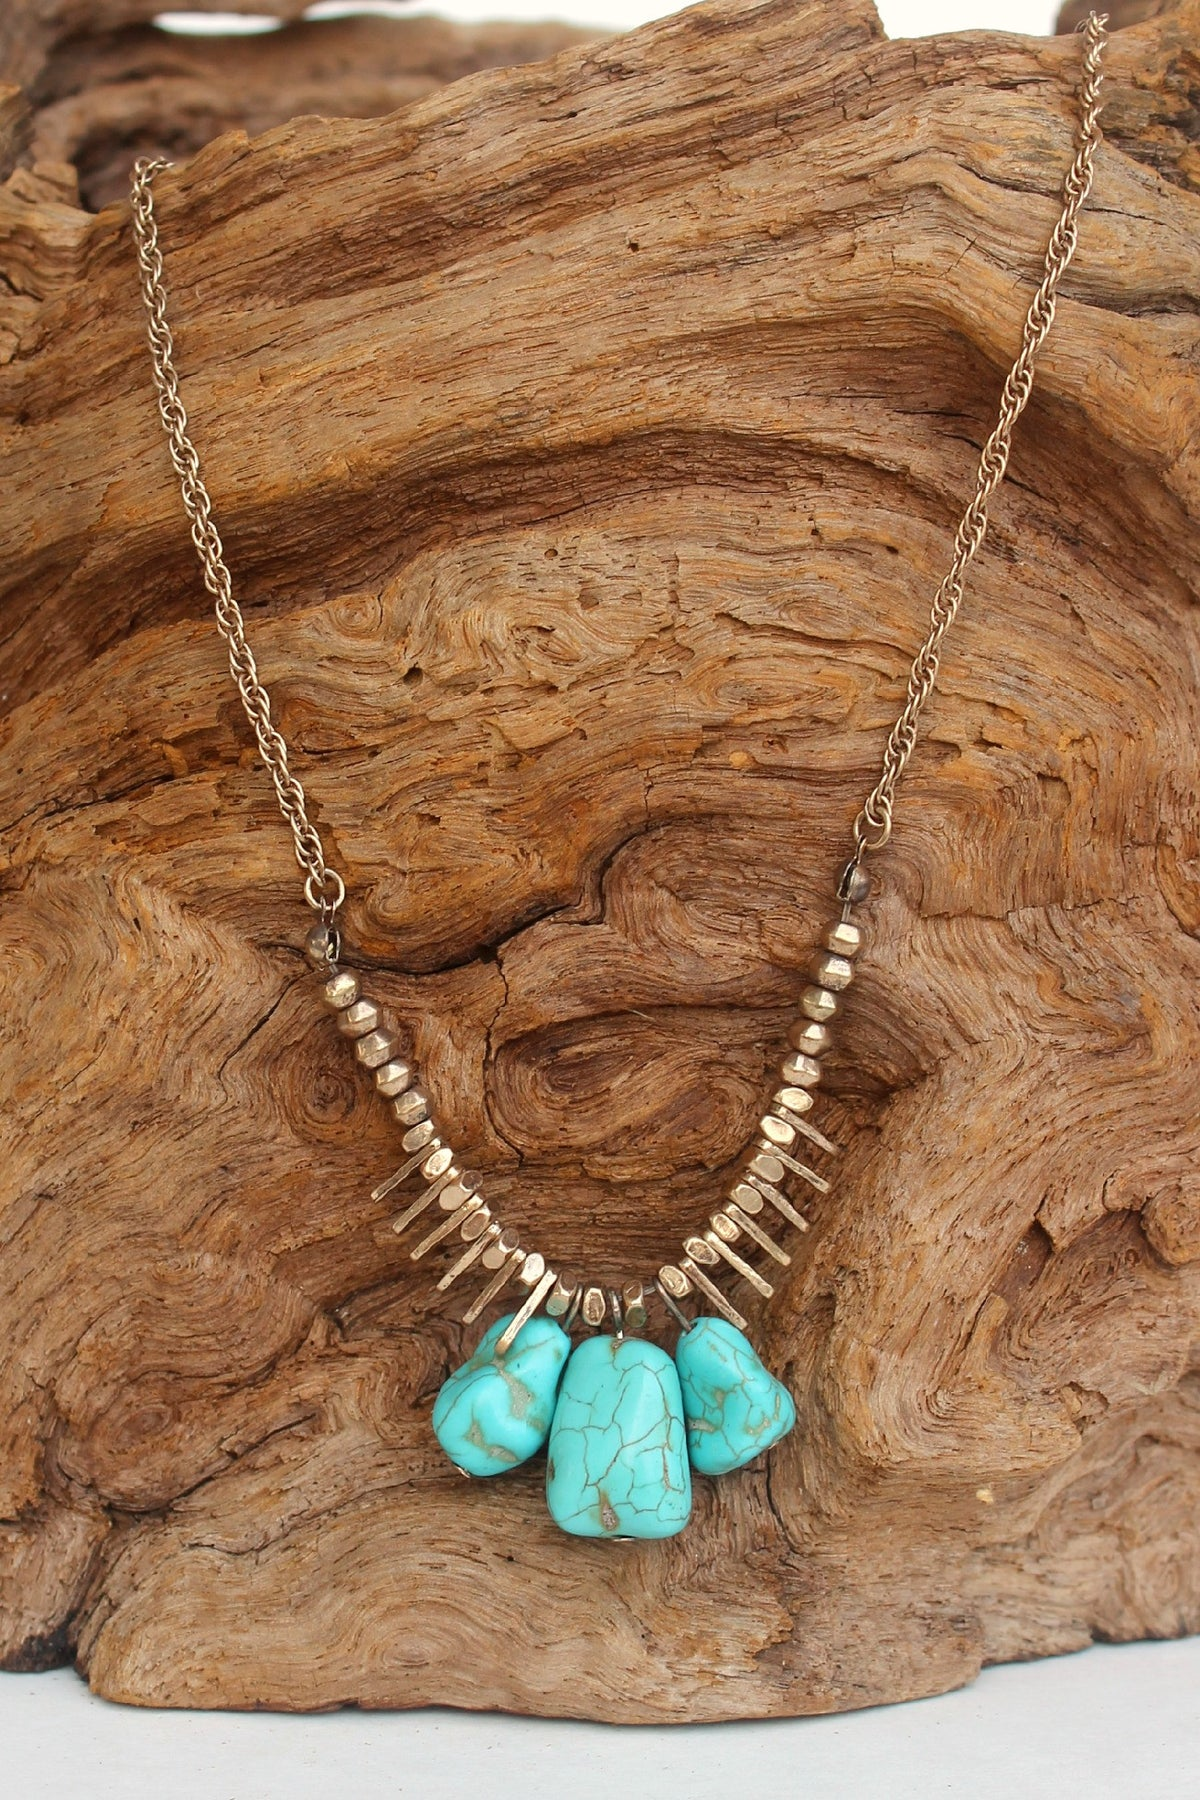 Nugget and Metal Bars Link Necklace, Turquoise